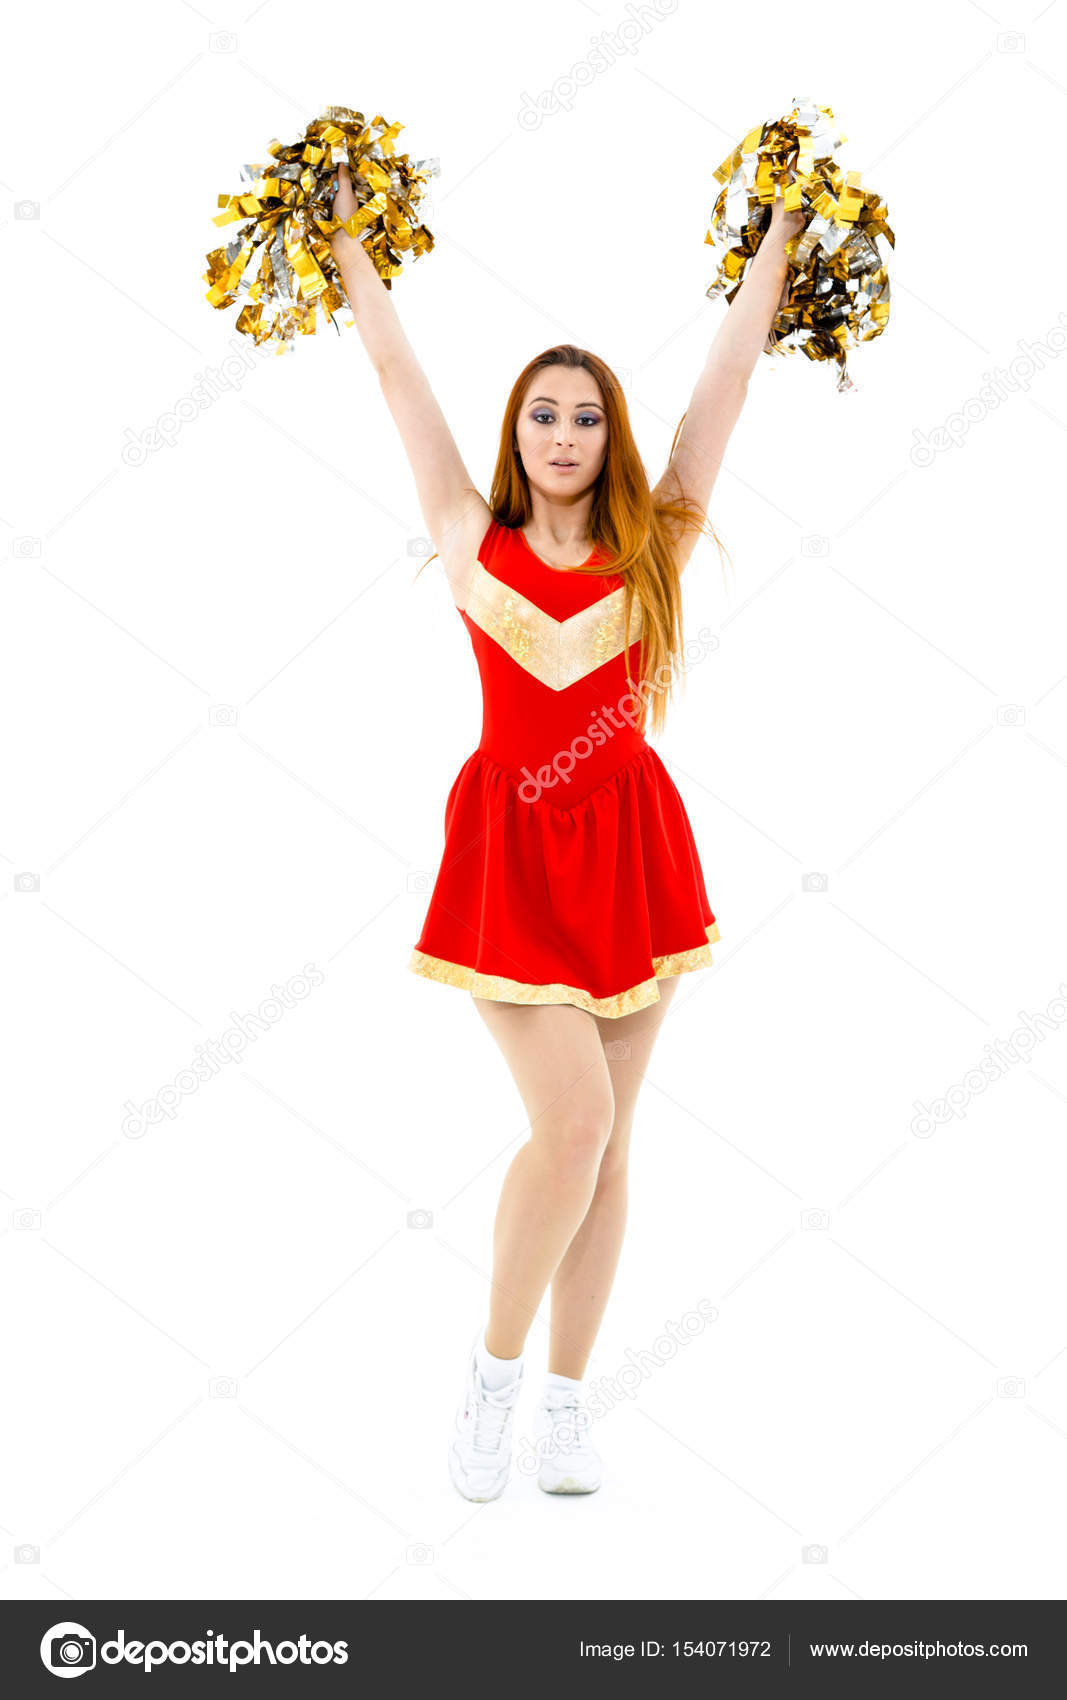 Beautiful Cheerleader In Red Costume Posing With Pom Poms Photo By